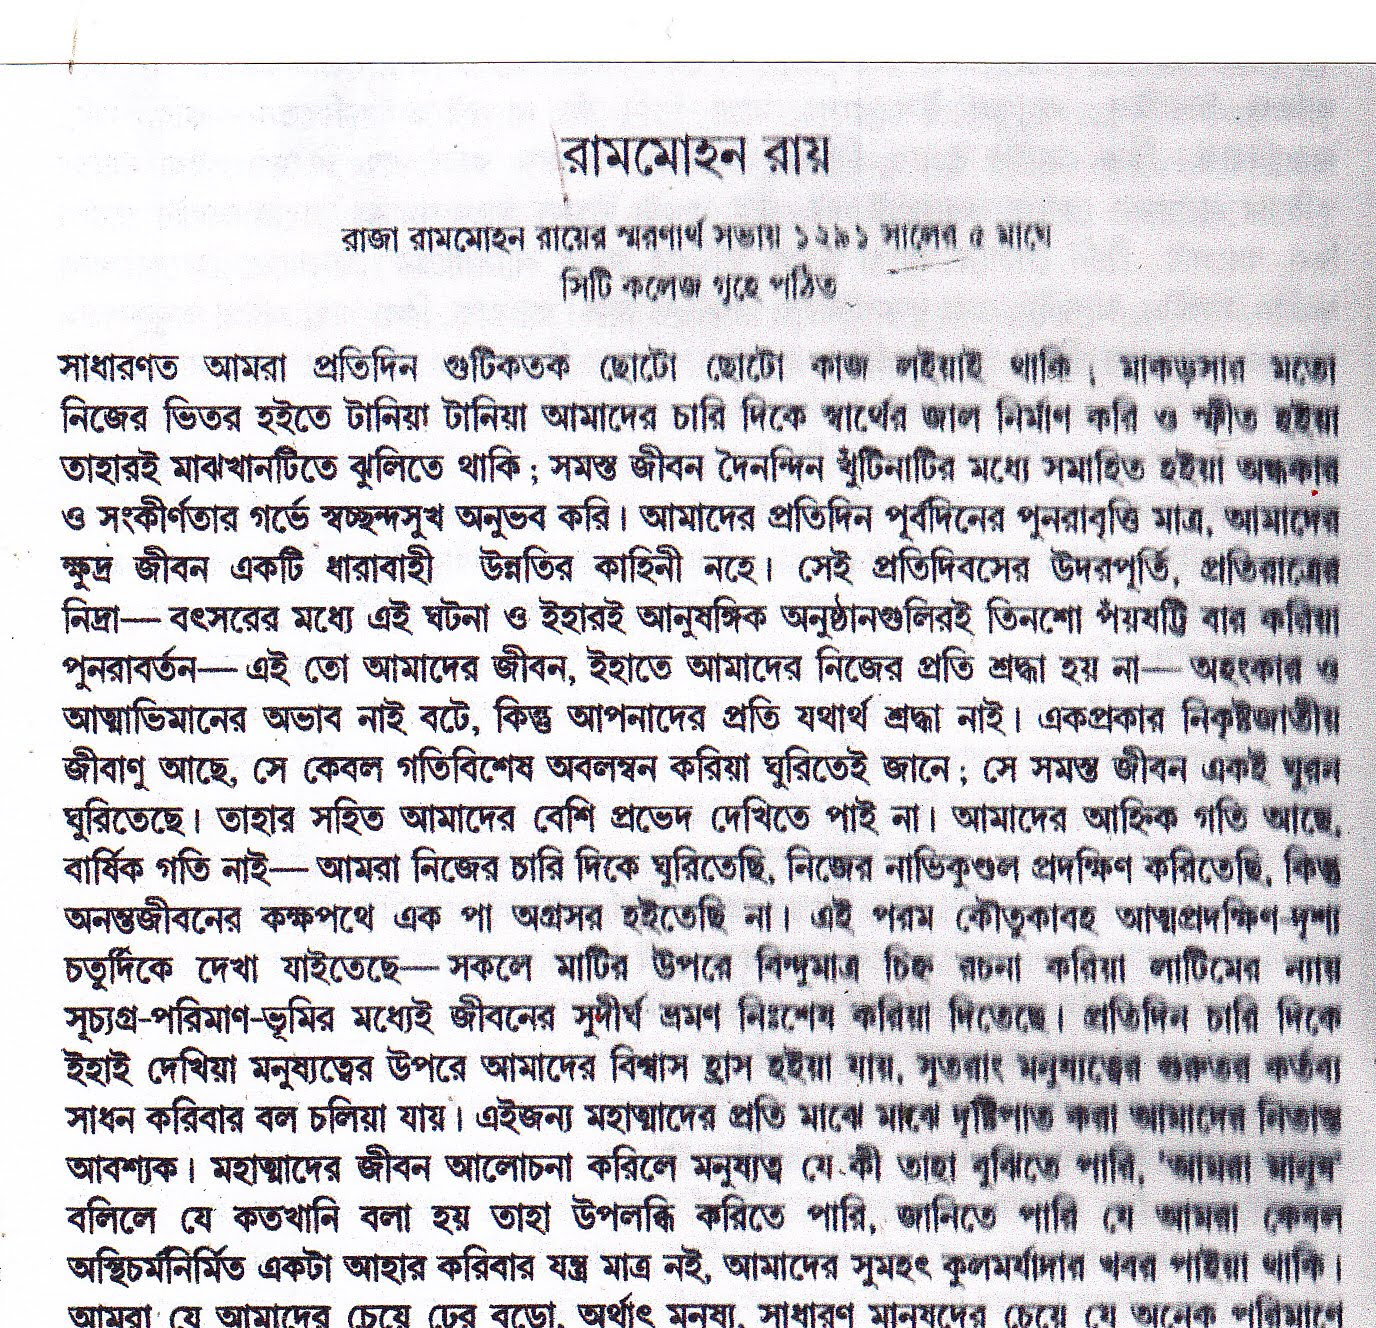 smaraka grantha rabindranath at twenty four  at the beginning of the year on 19 rabindranath out an essay on rammohan roy at city college hall on mirzapur street